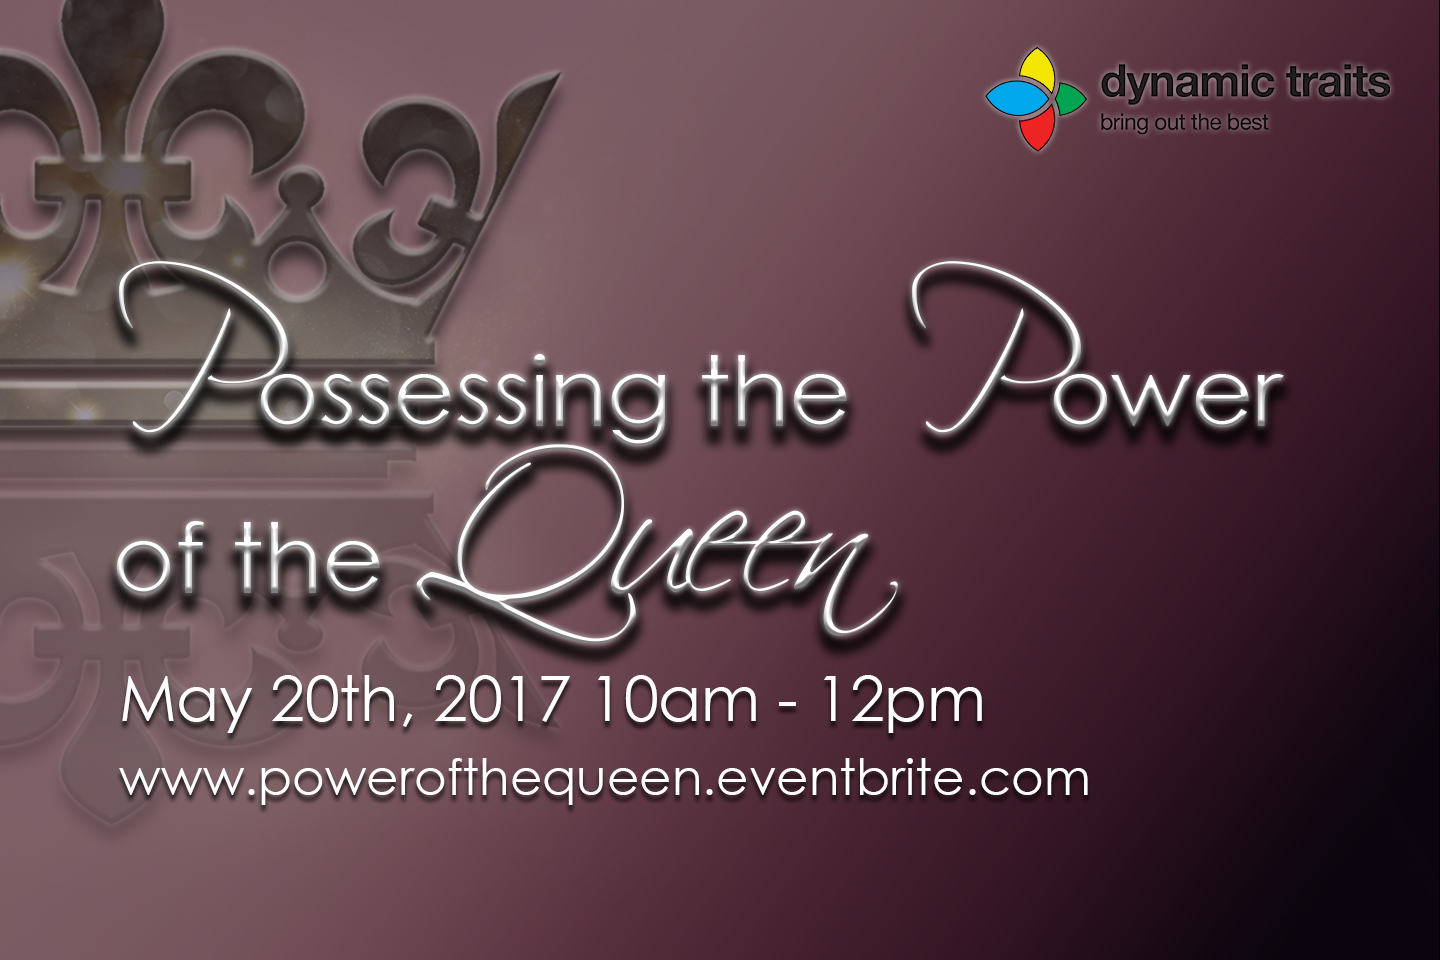 Possessing-the-power-of-the-queen-5.20.17